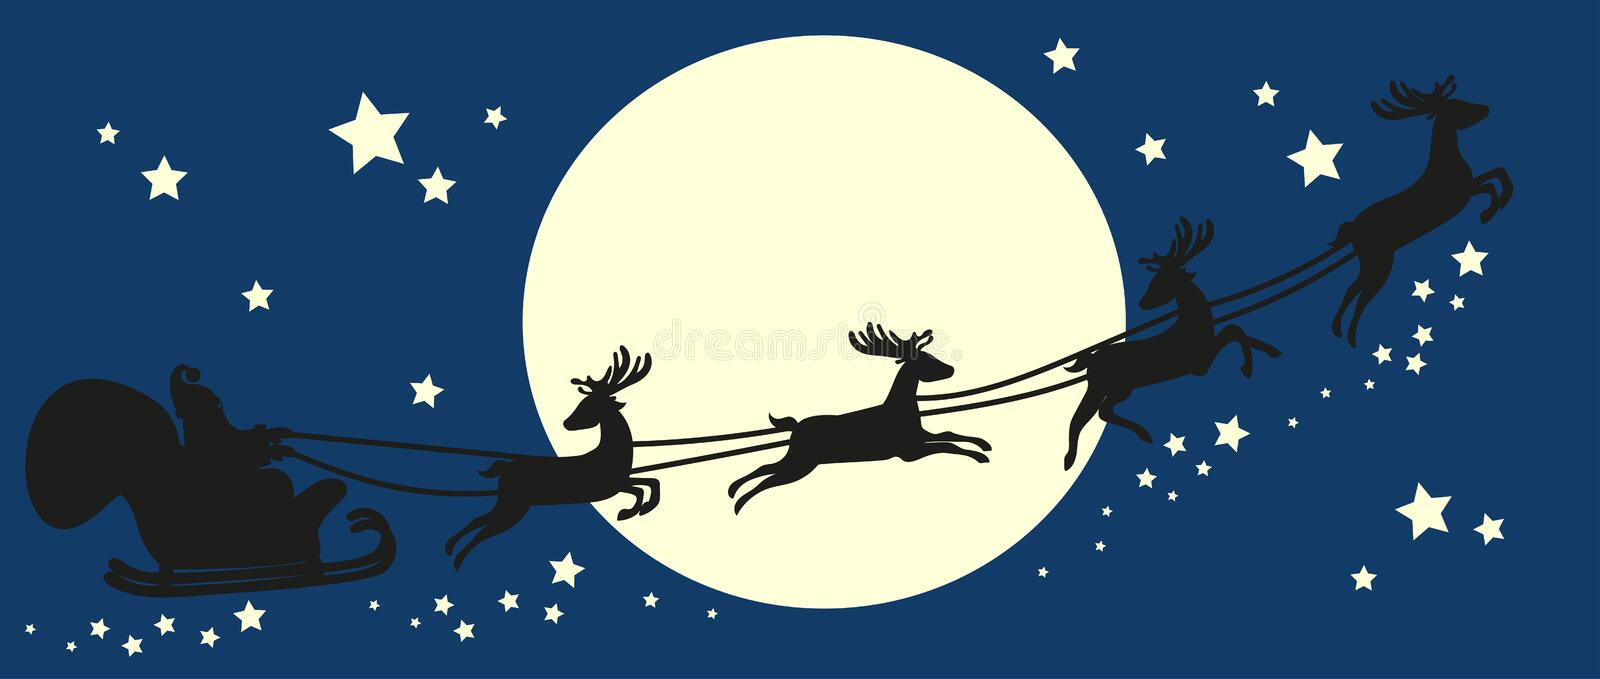 Santa Claus in sleigh. Silhouette on blue sky. Santa Claus flying in sleigh with deer. Black silhouette on blue sky with moon. Vector illustration royalty free illustration